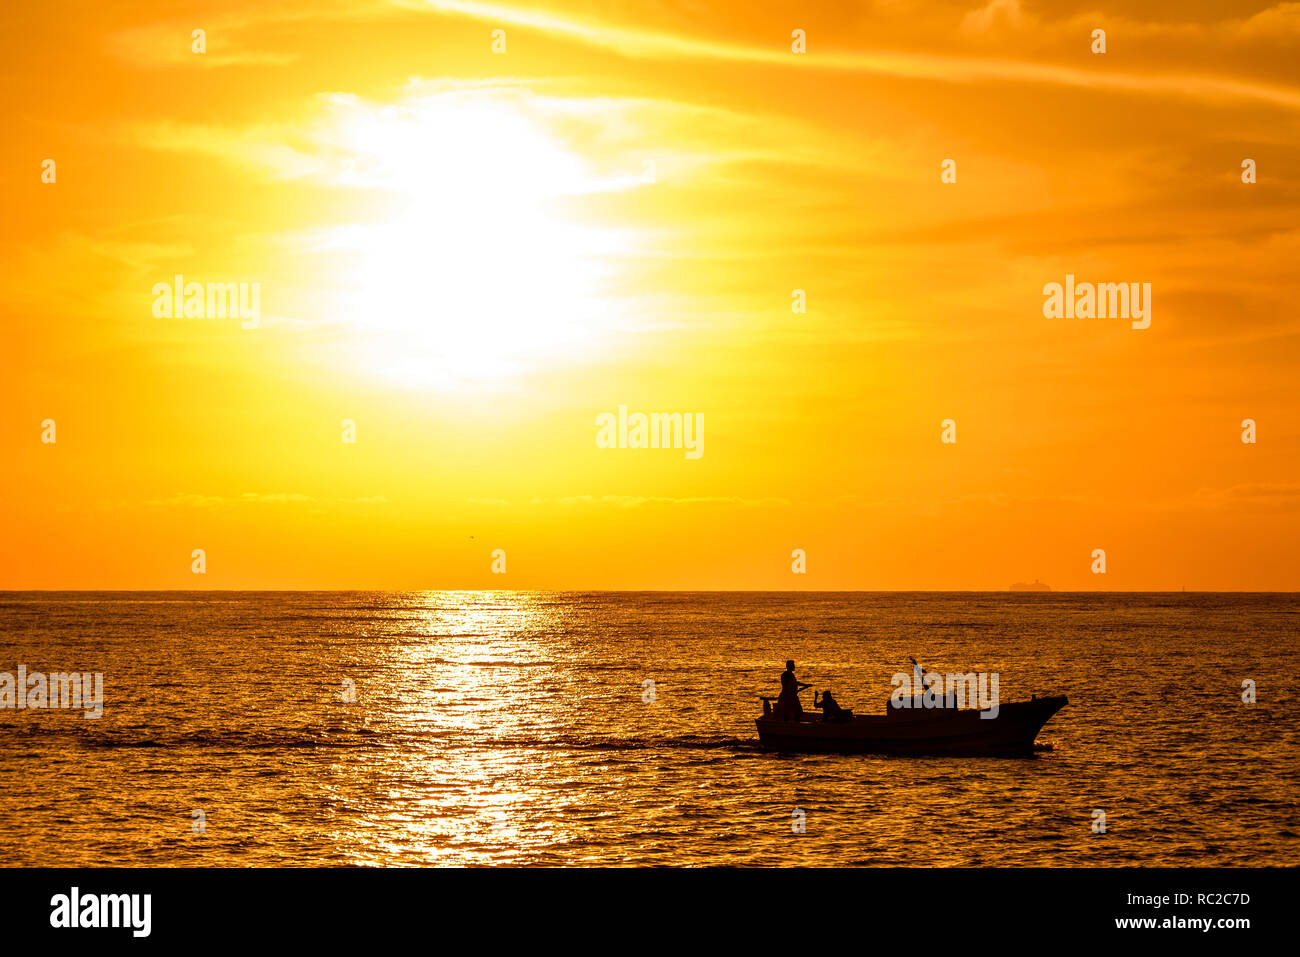 Setting Sun Spotlights Solitary >> Silhouette Of A Fishing Boat Passing In Front Of An Orange Sunset